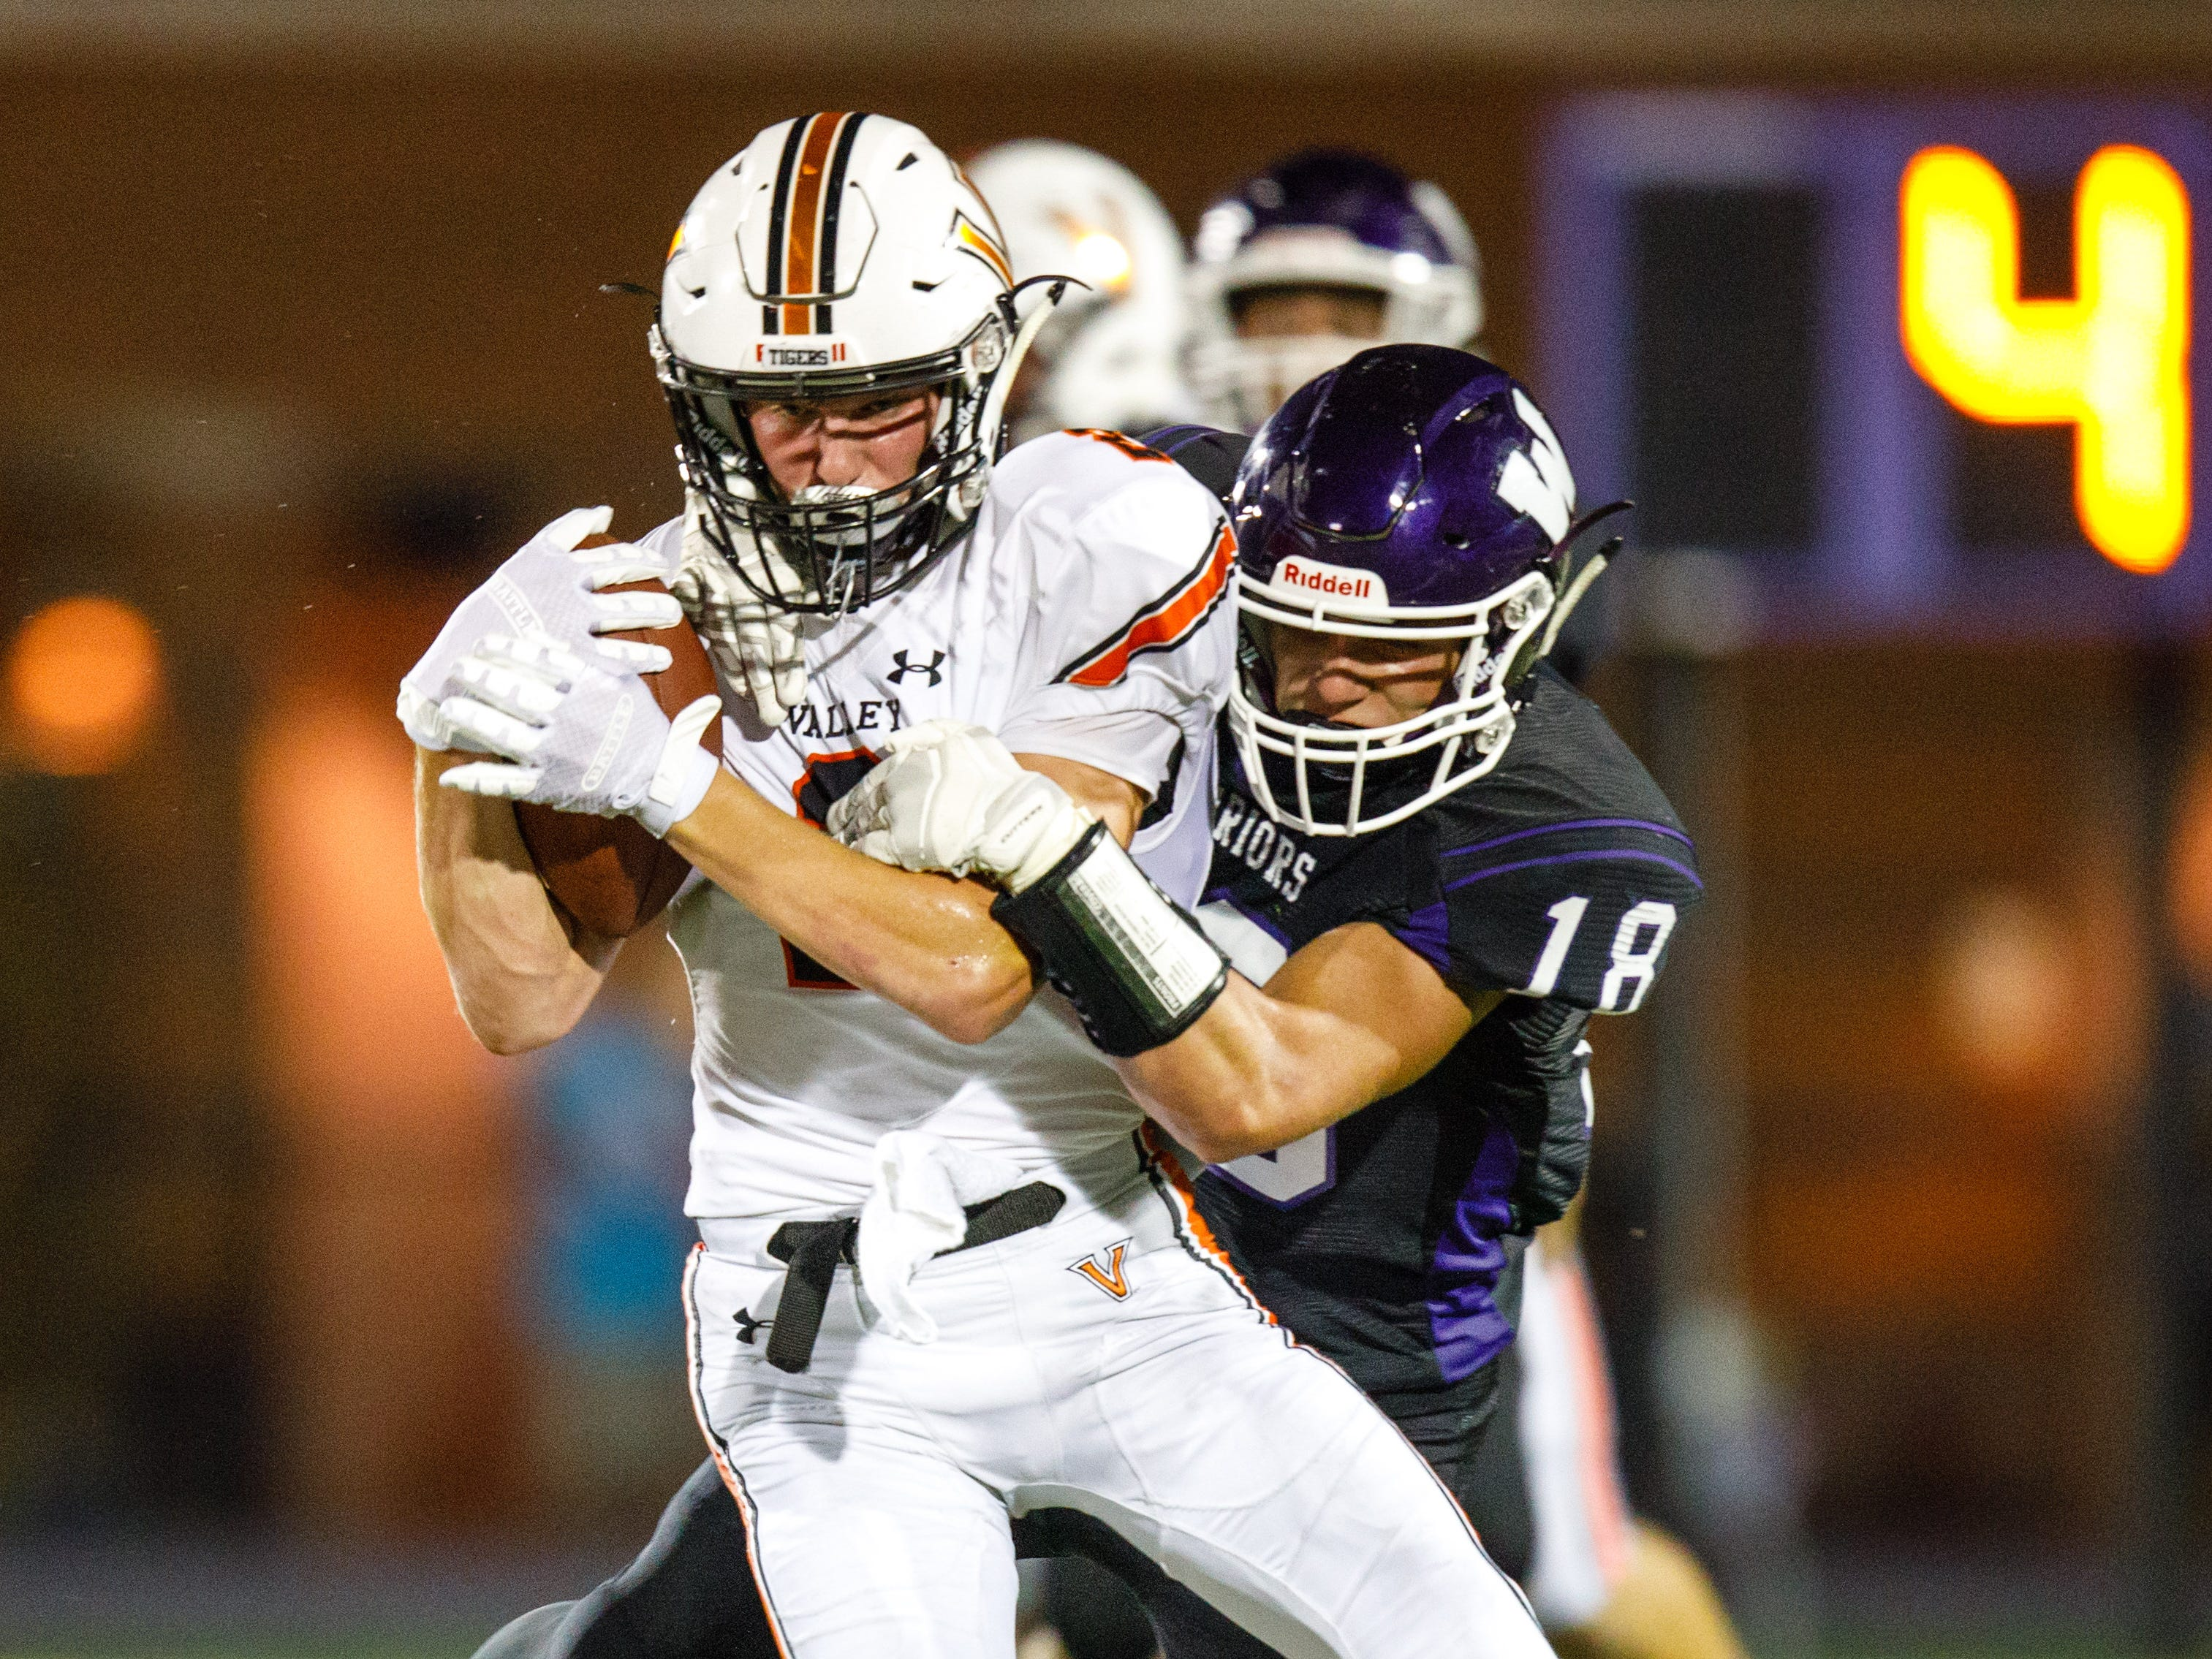 Valley High School's Ryan Neu (2) is hit by Waukee's Zach Eaton (18) in the second quarter Friday, Sept. 14, 2018, at Waukee Stadium.